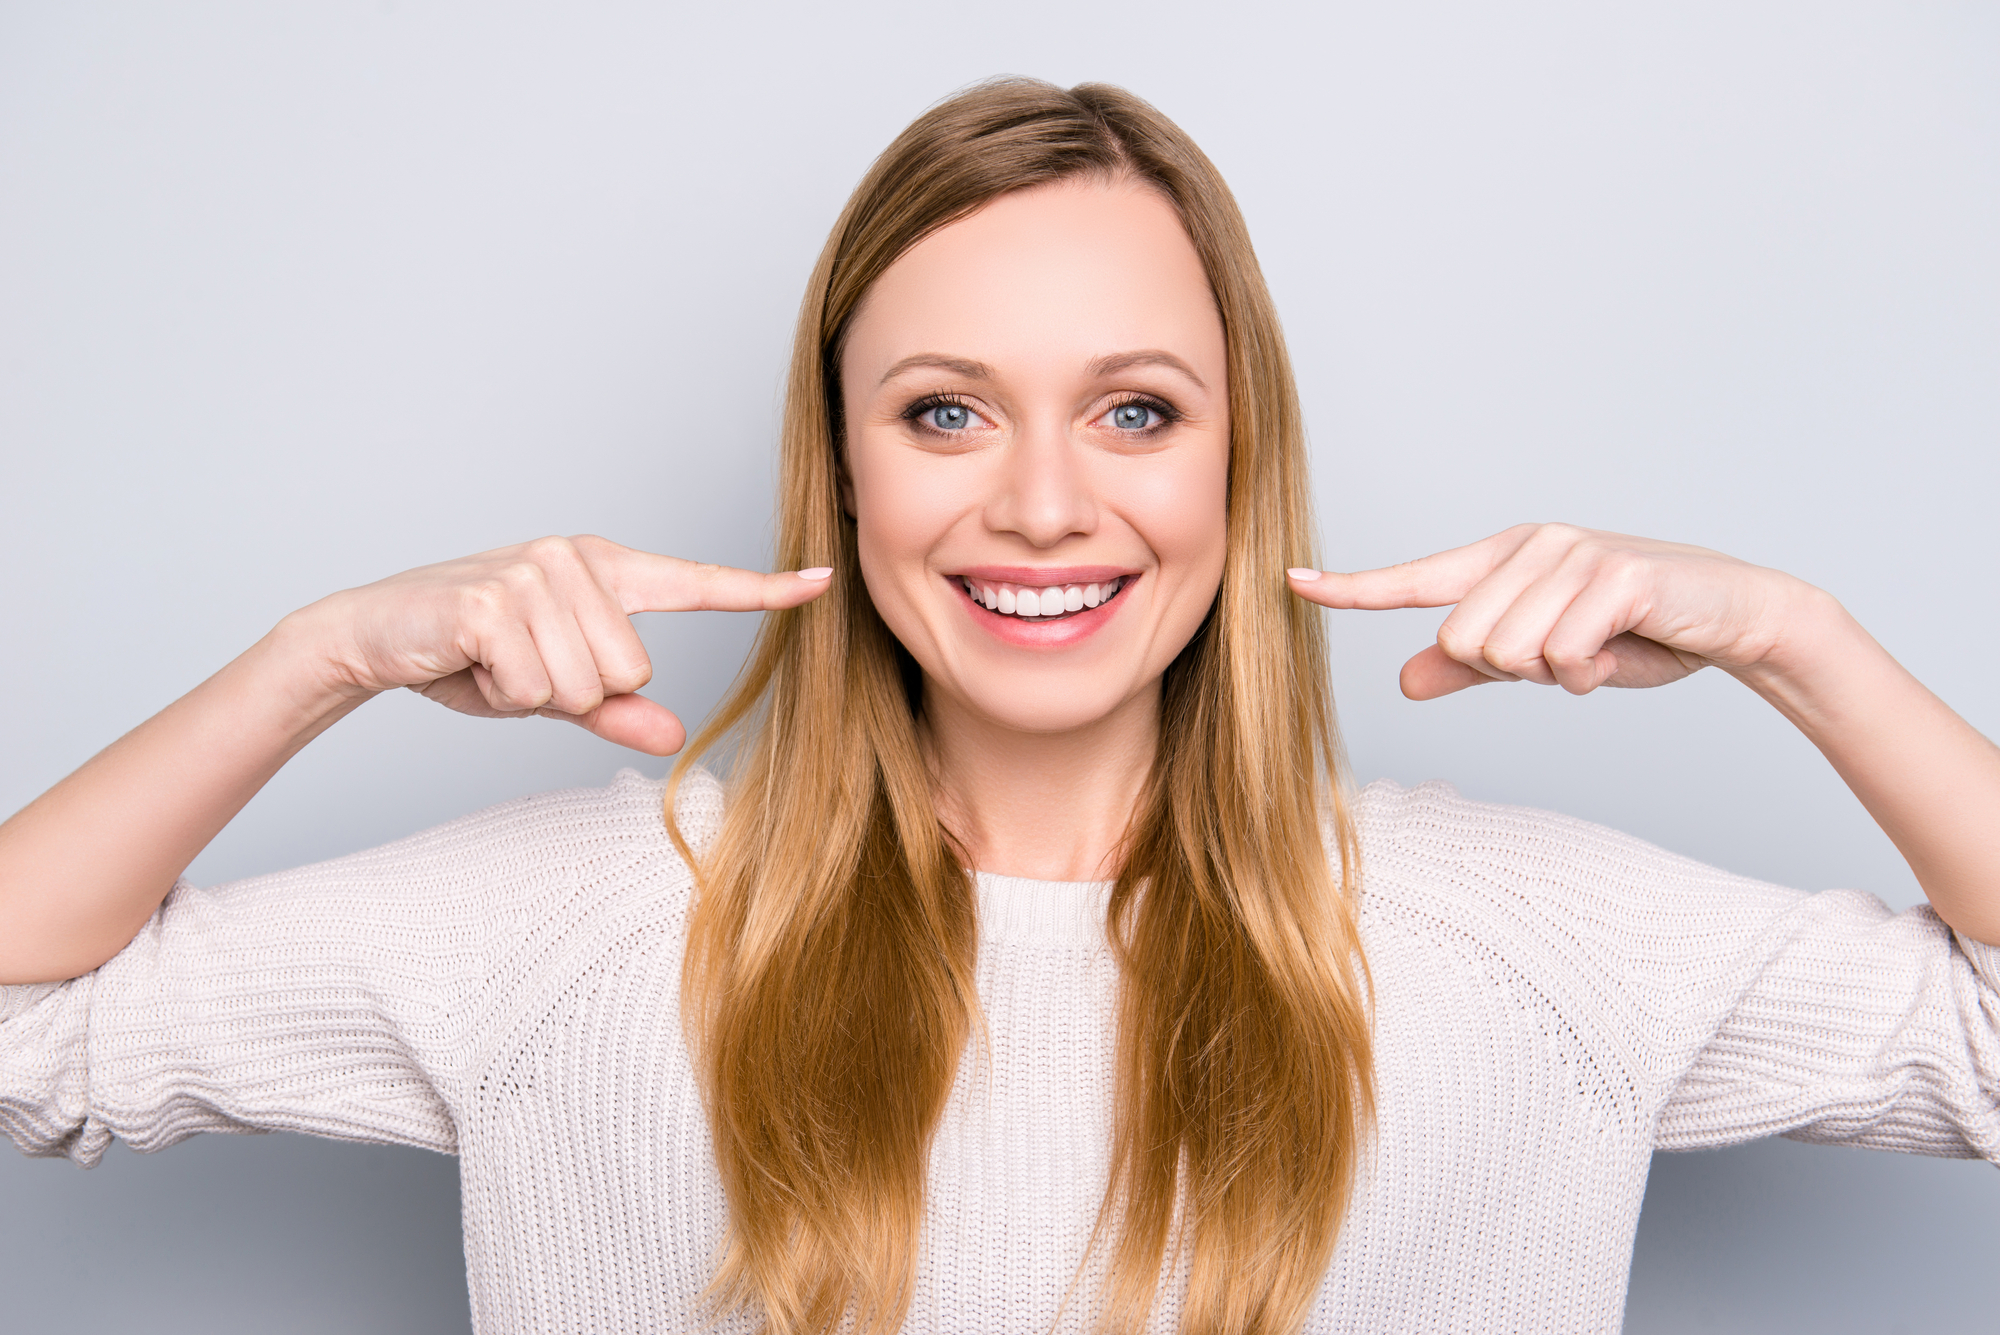 who offers the best veneers boynton beach?